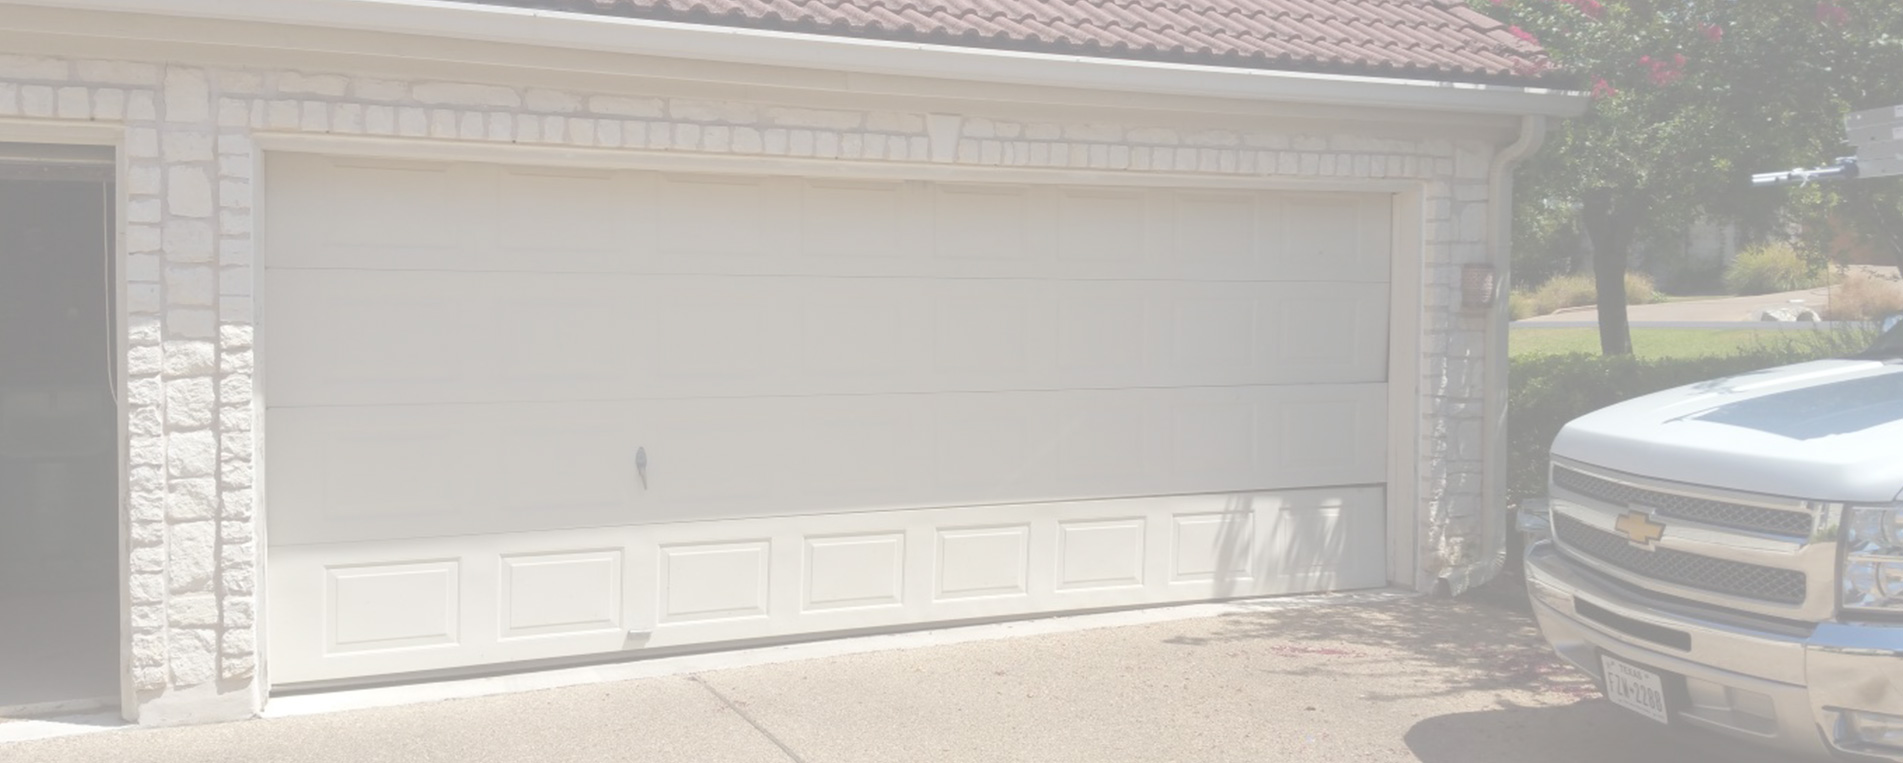 Garage Door Repair Carlsbad Ca Expert Services At Affordable Rates